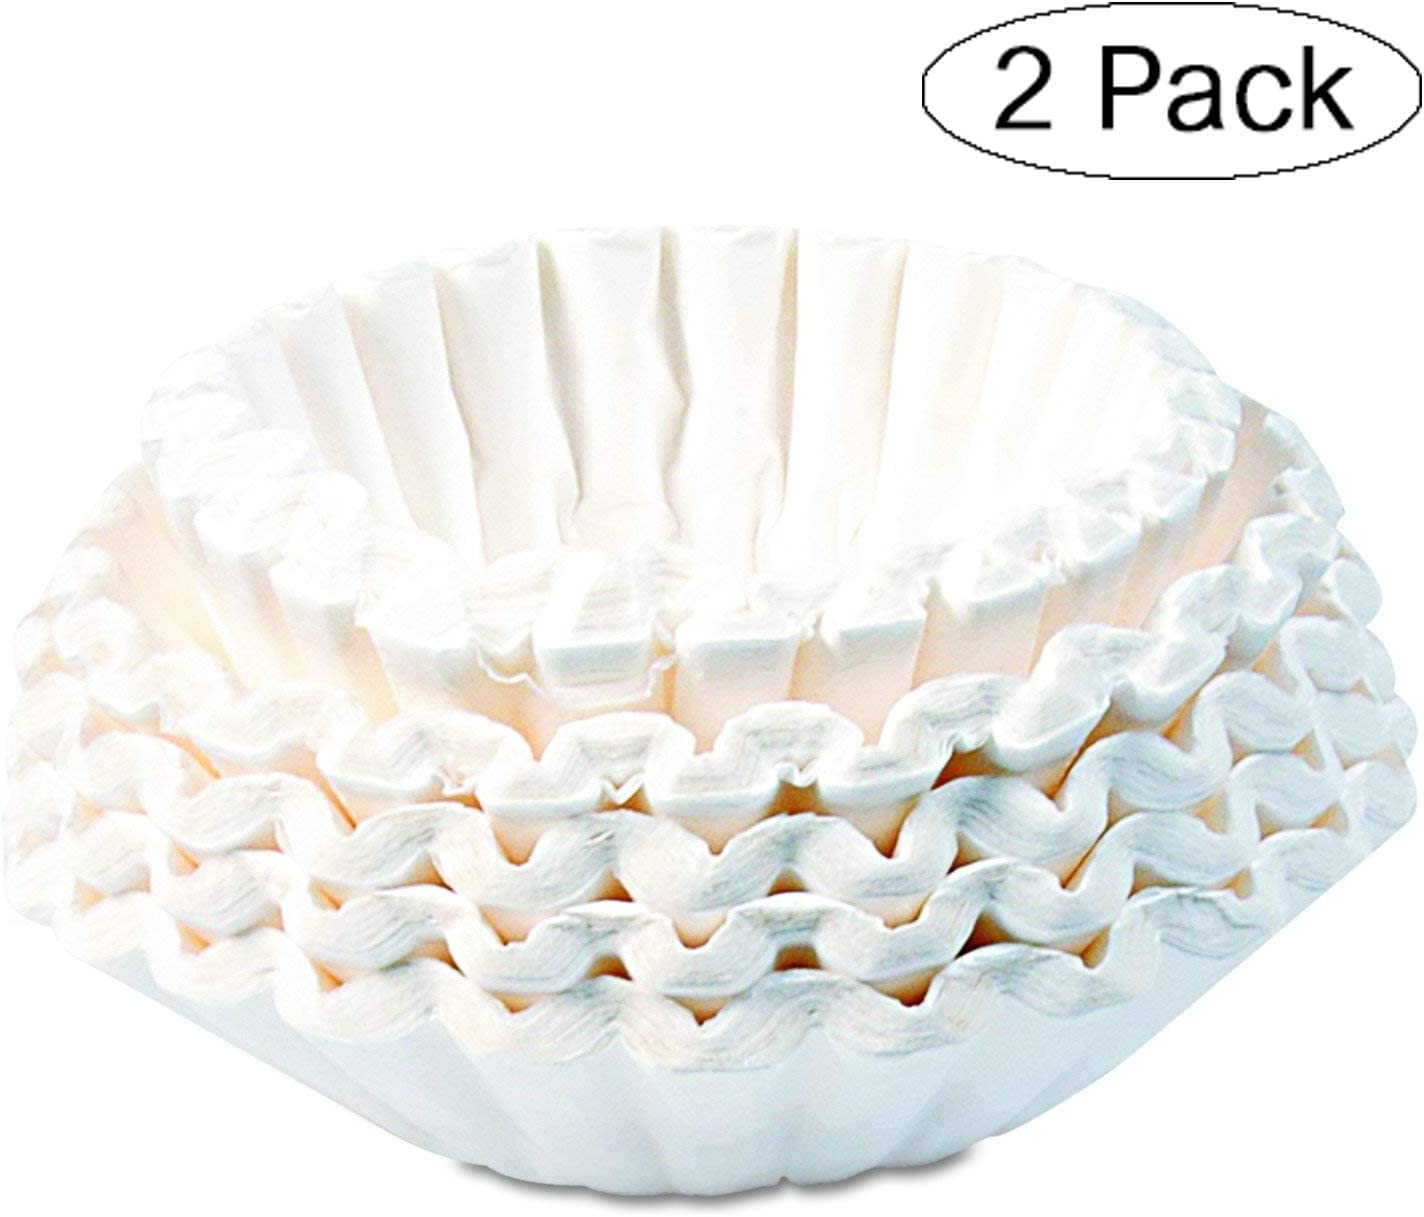 Bunn 1M5002 Commercial Coffee Filters, 12-Cup Size (Case von 1000) (Twо РасK, Original)